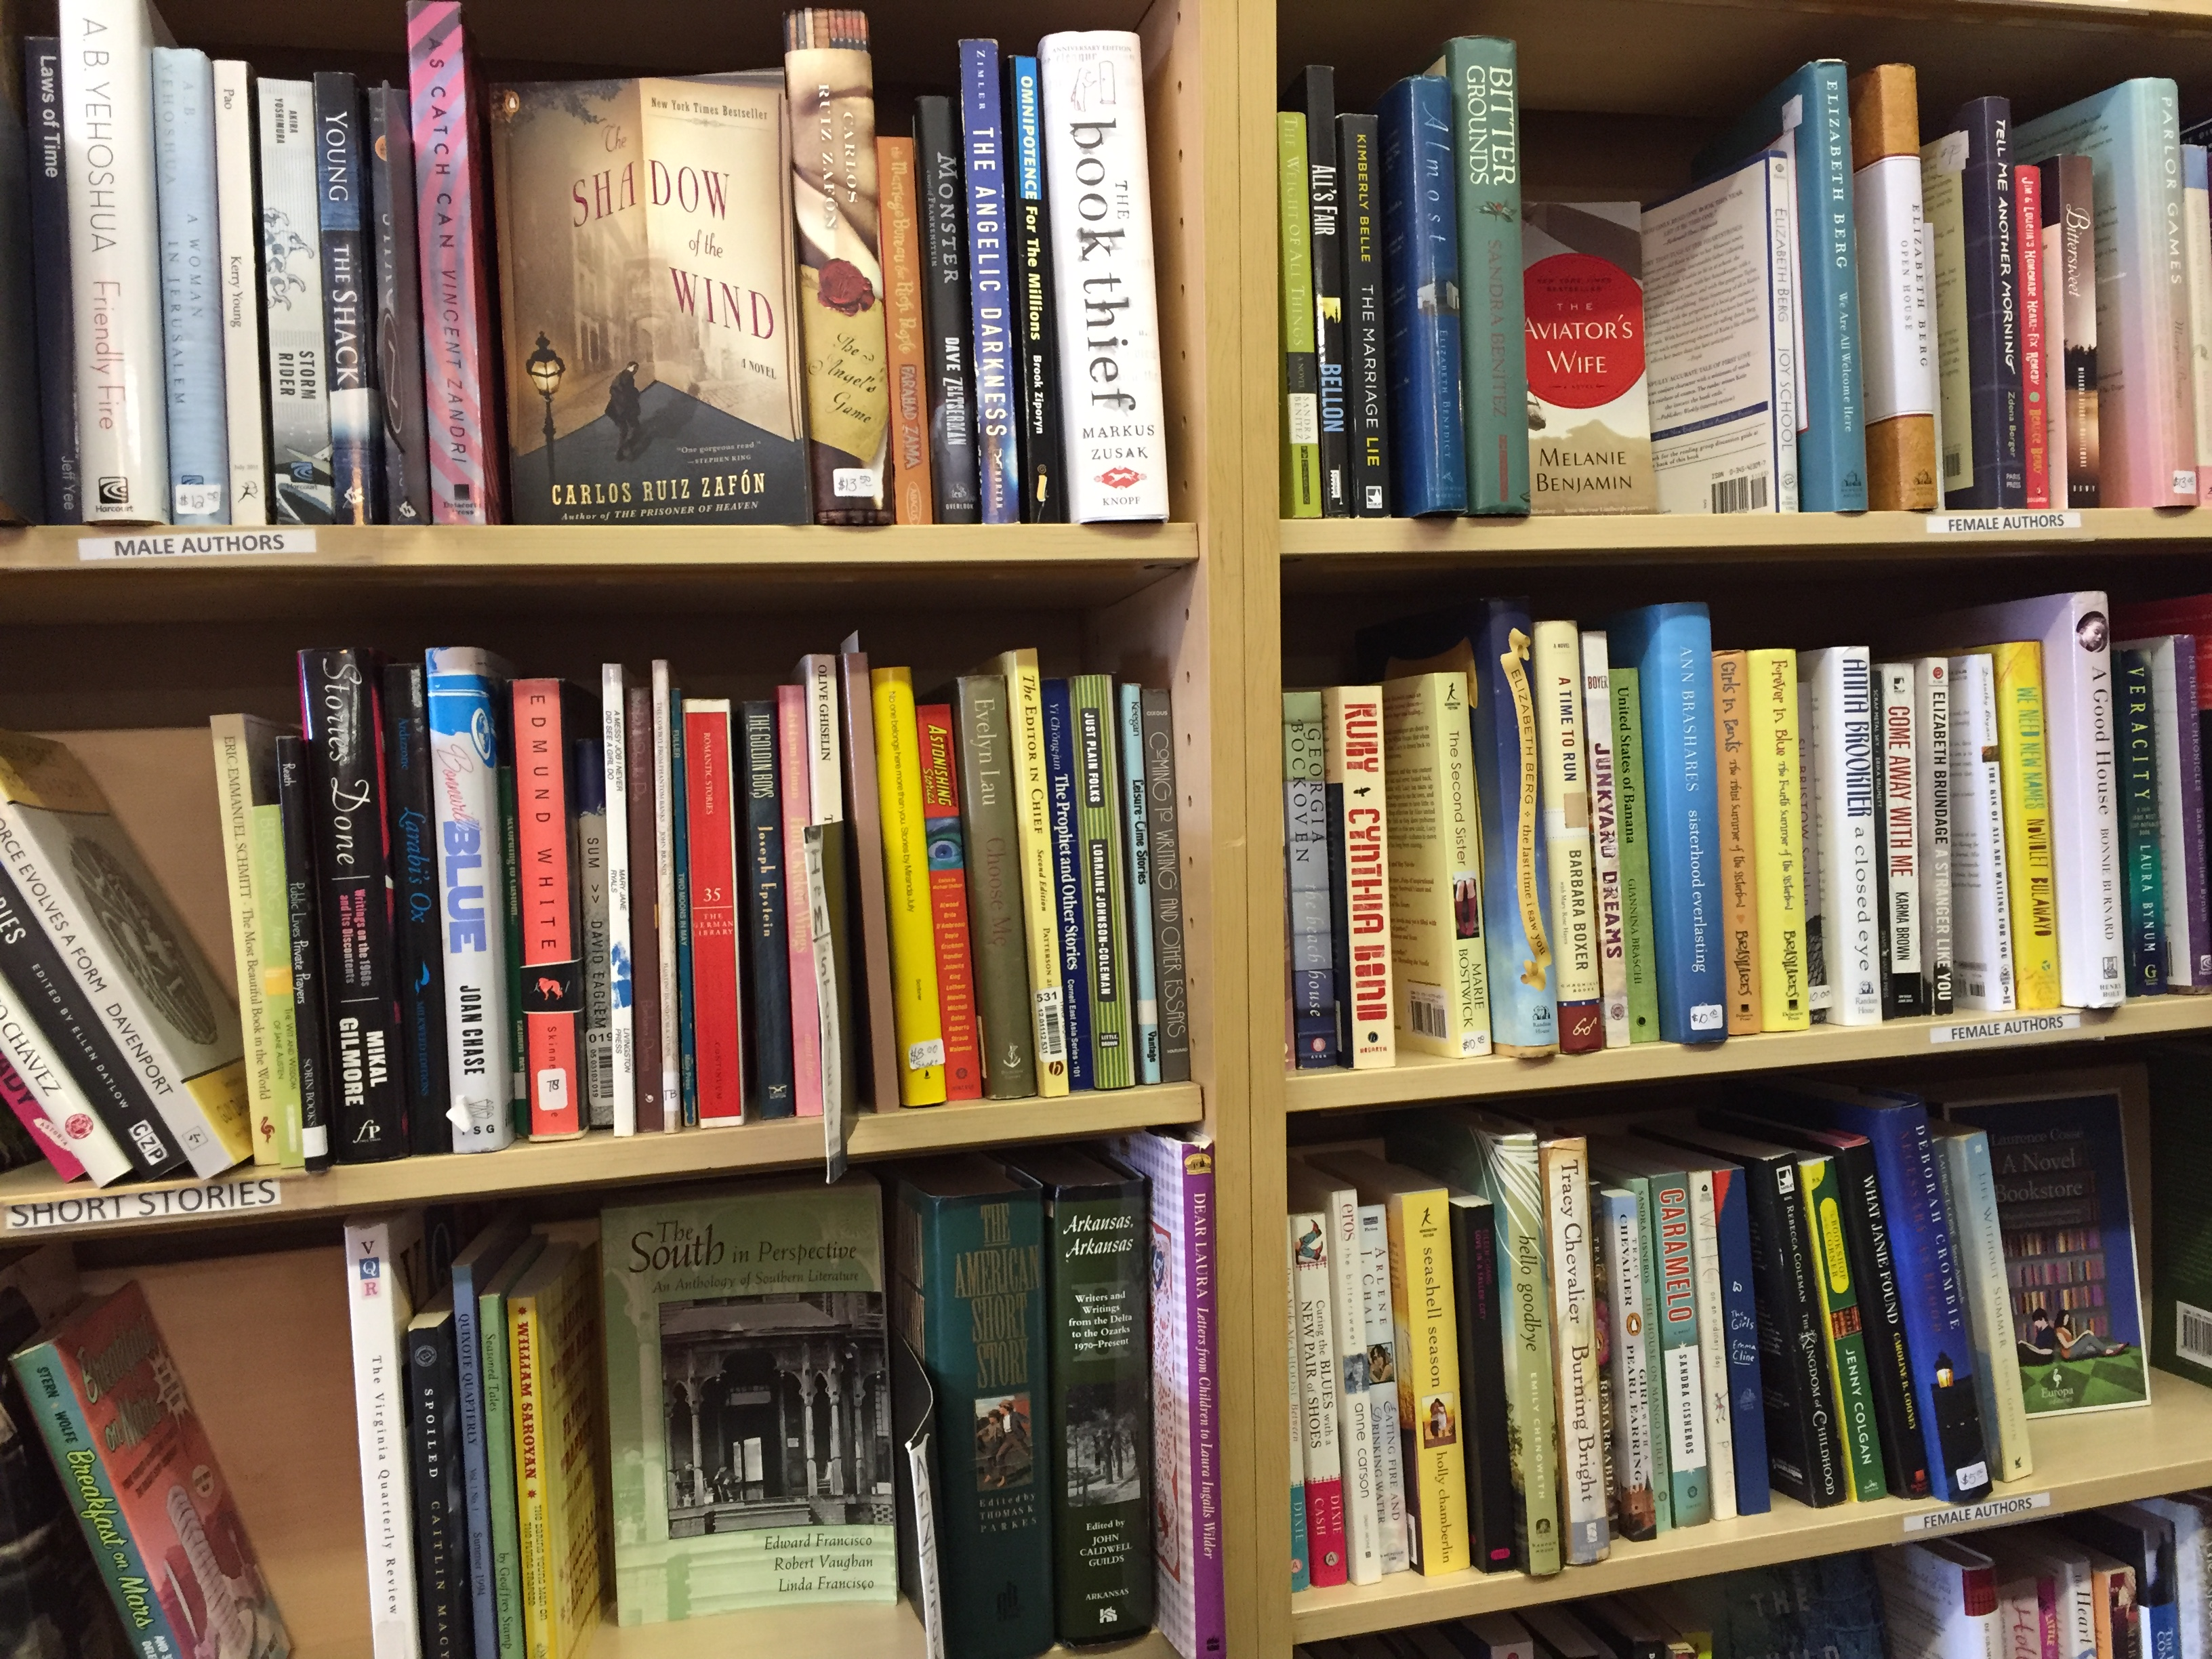 2-10 talk story bookstore shelves | another eye opens